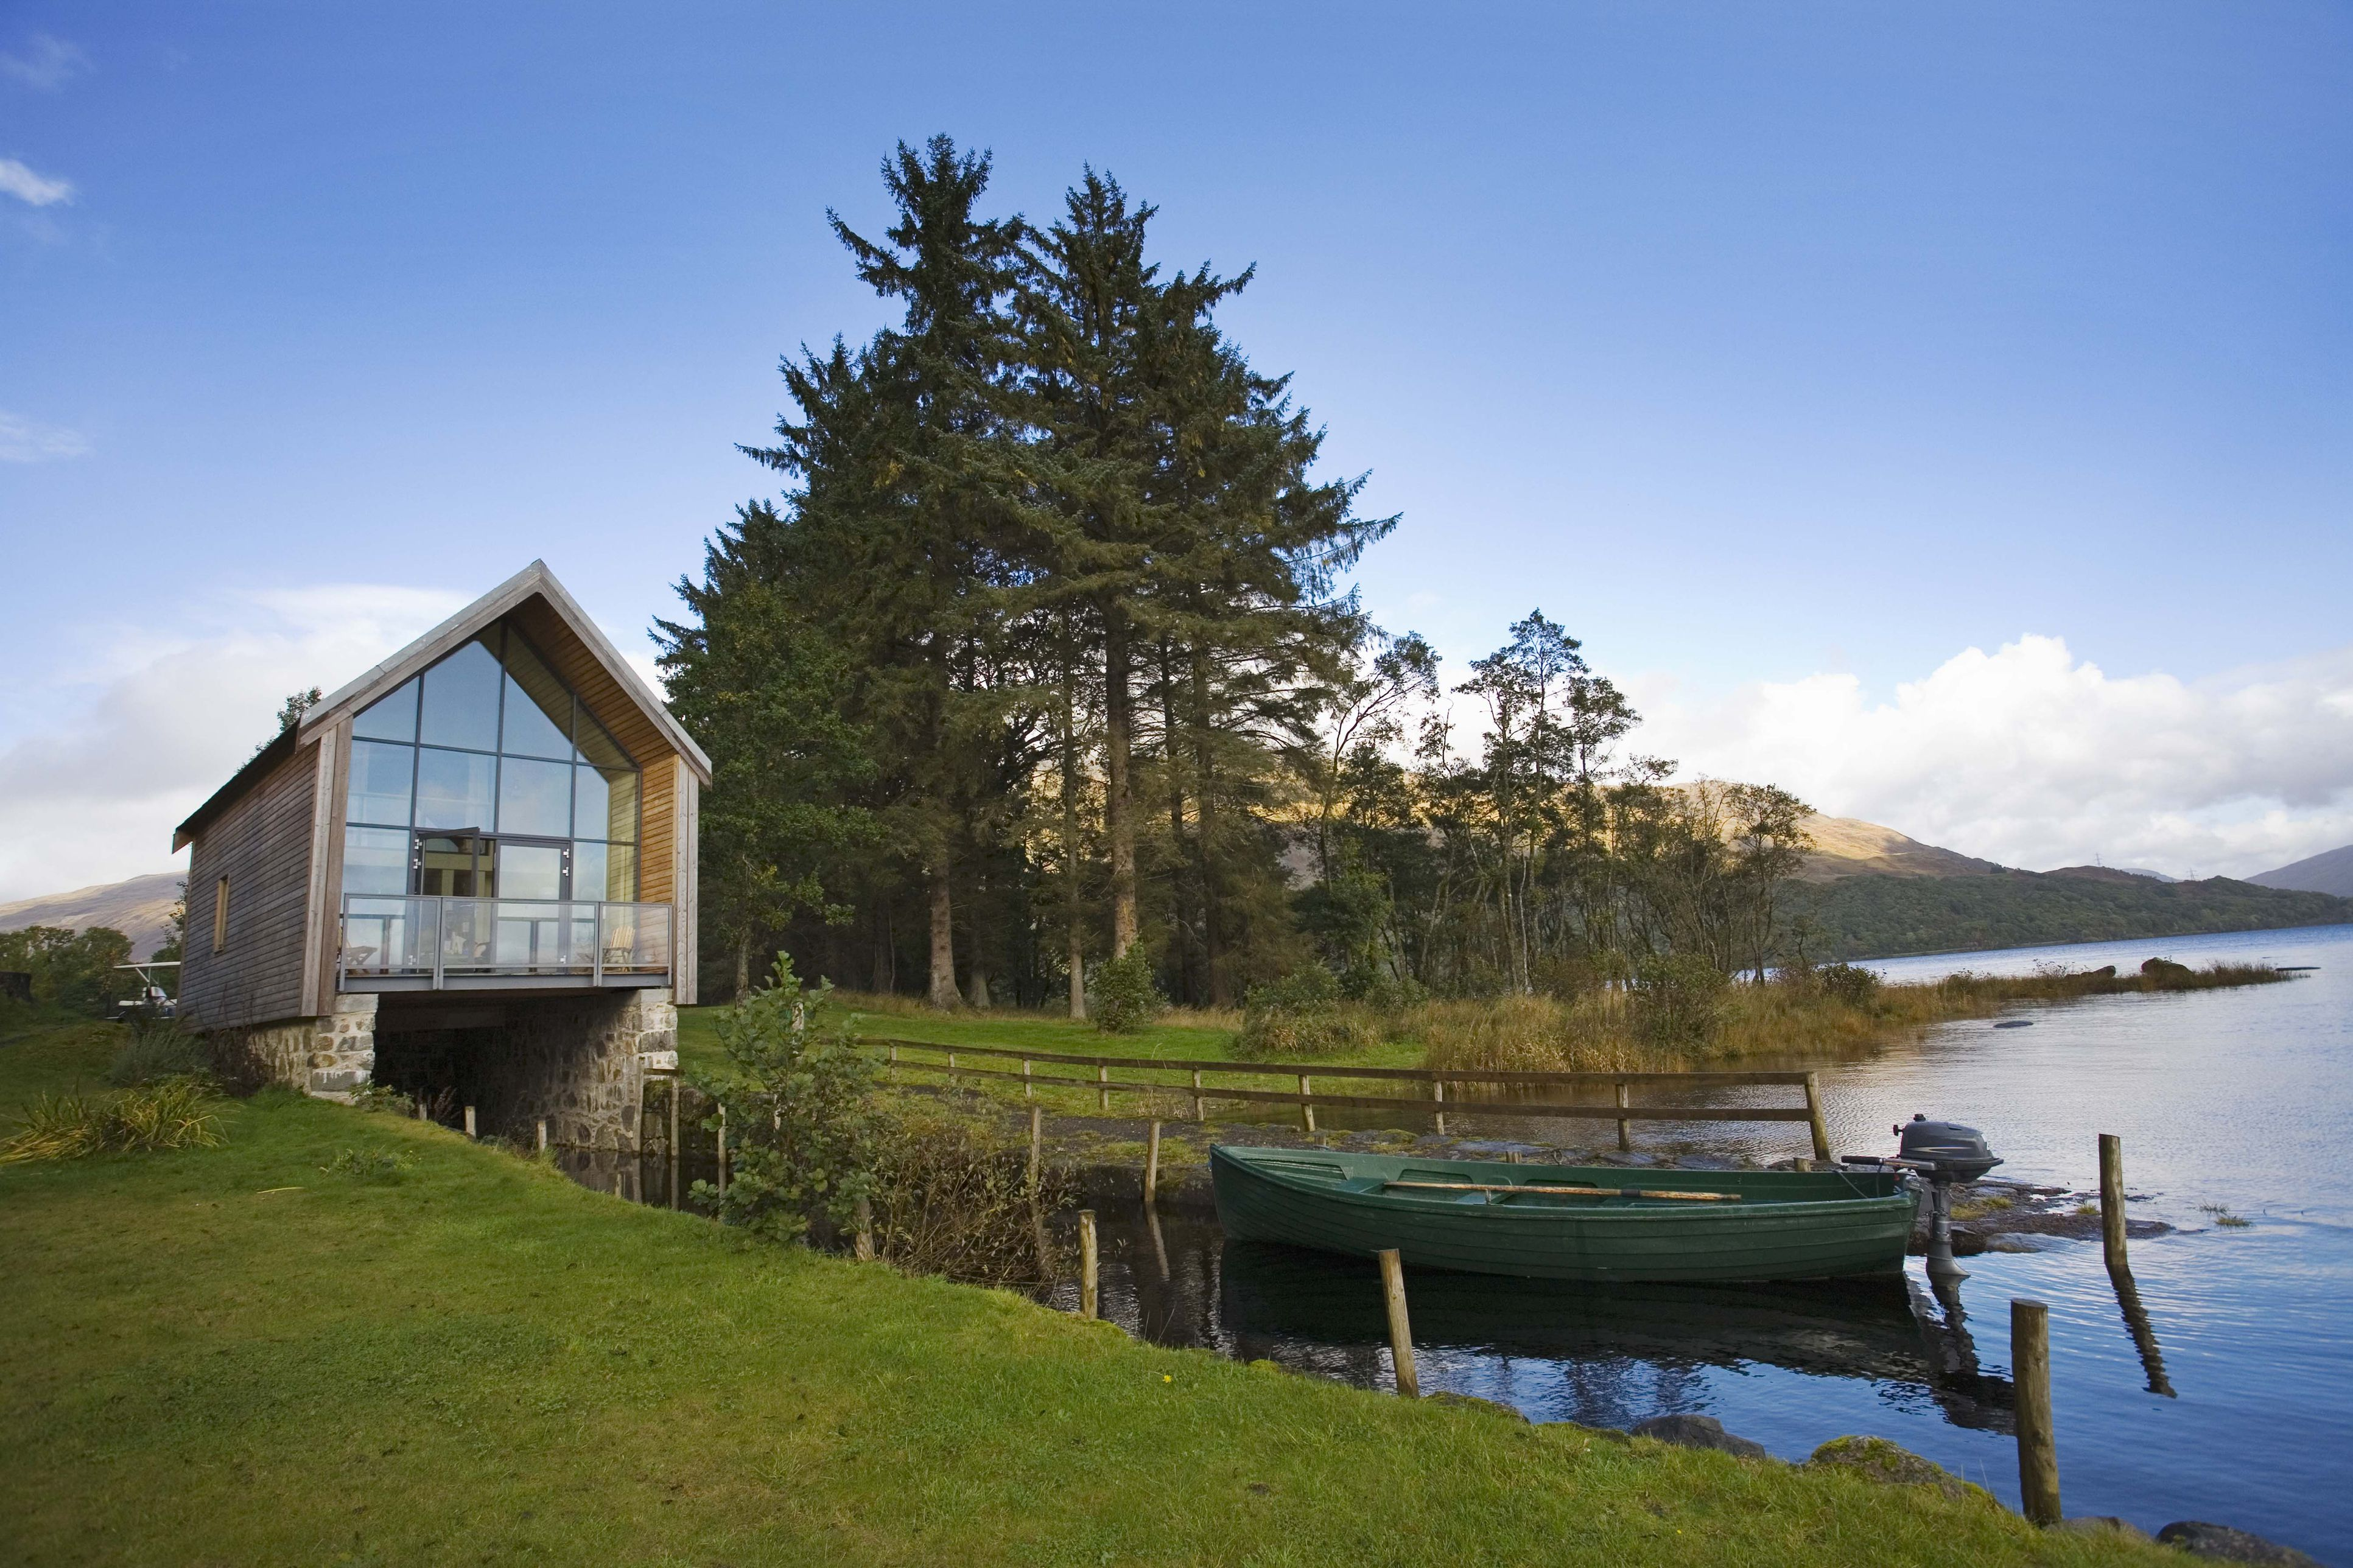 Boathouse and rowing boat on Loch Awe, Highlands of Scotland